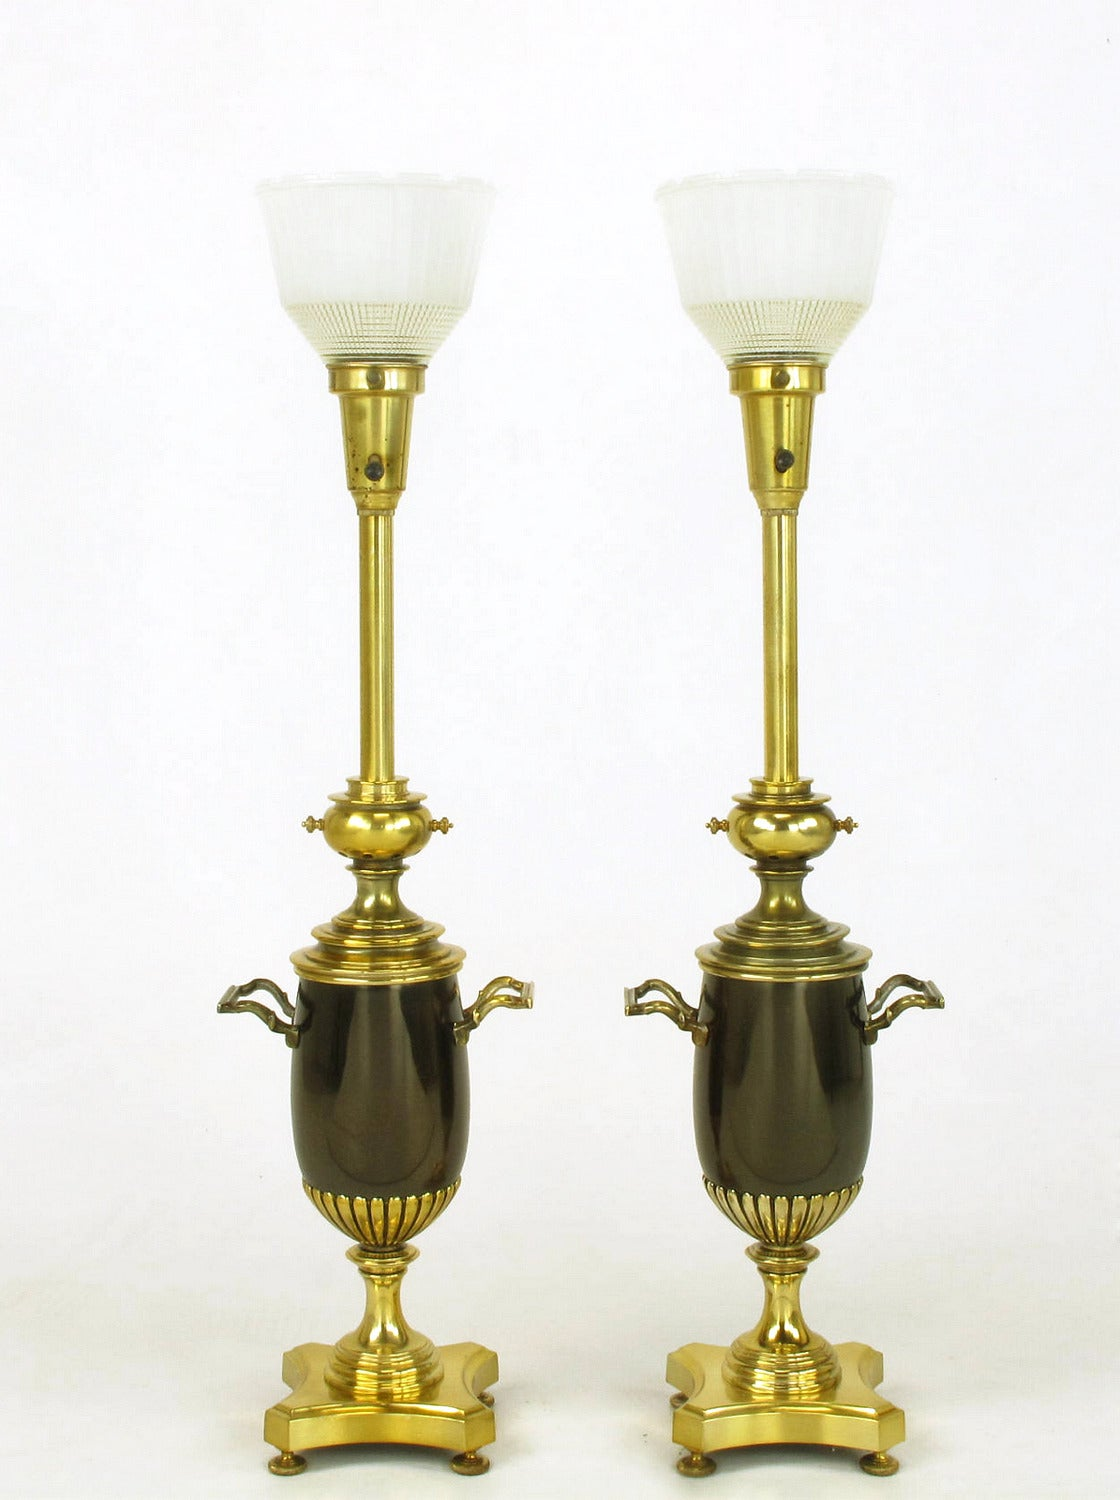 Pair of brass toned silver and bronze urn form table lamps. Urn bodies are bronze with a pair of handles. Reverse quatrefoil footed base, flanged riser, reeded cup, spacers and stem all finished in brass toned lacquer over silver. Manufactured by